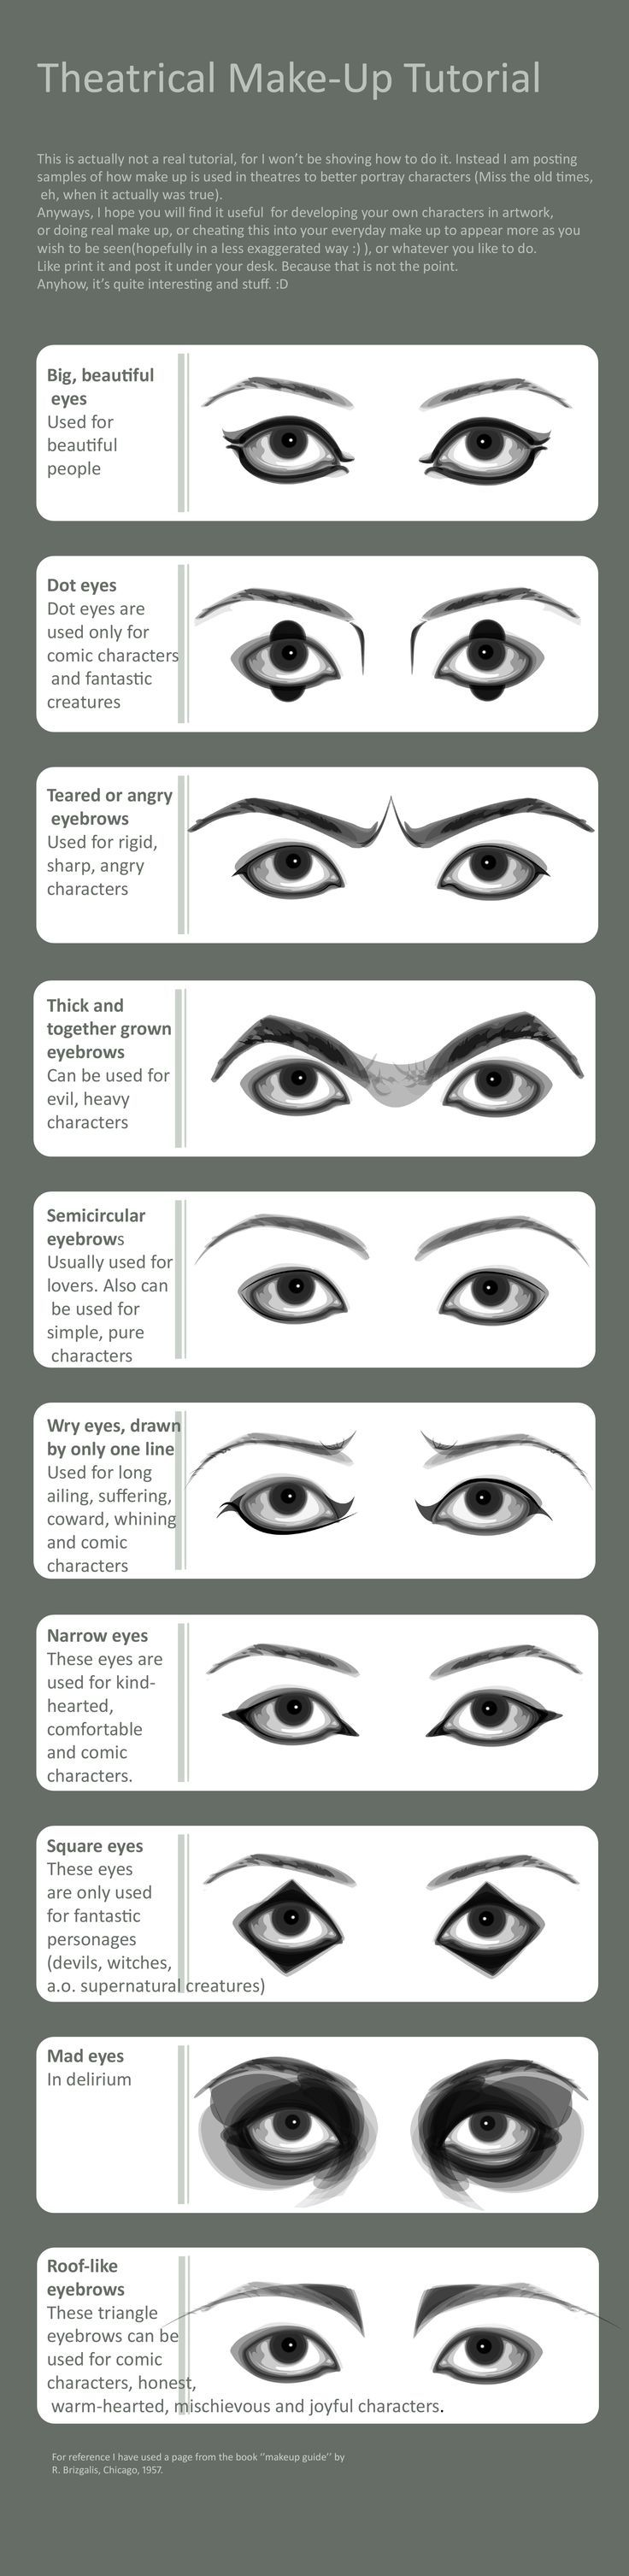 Eye designs for characters theatrical makeup creative